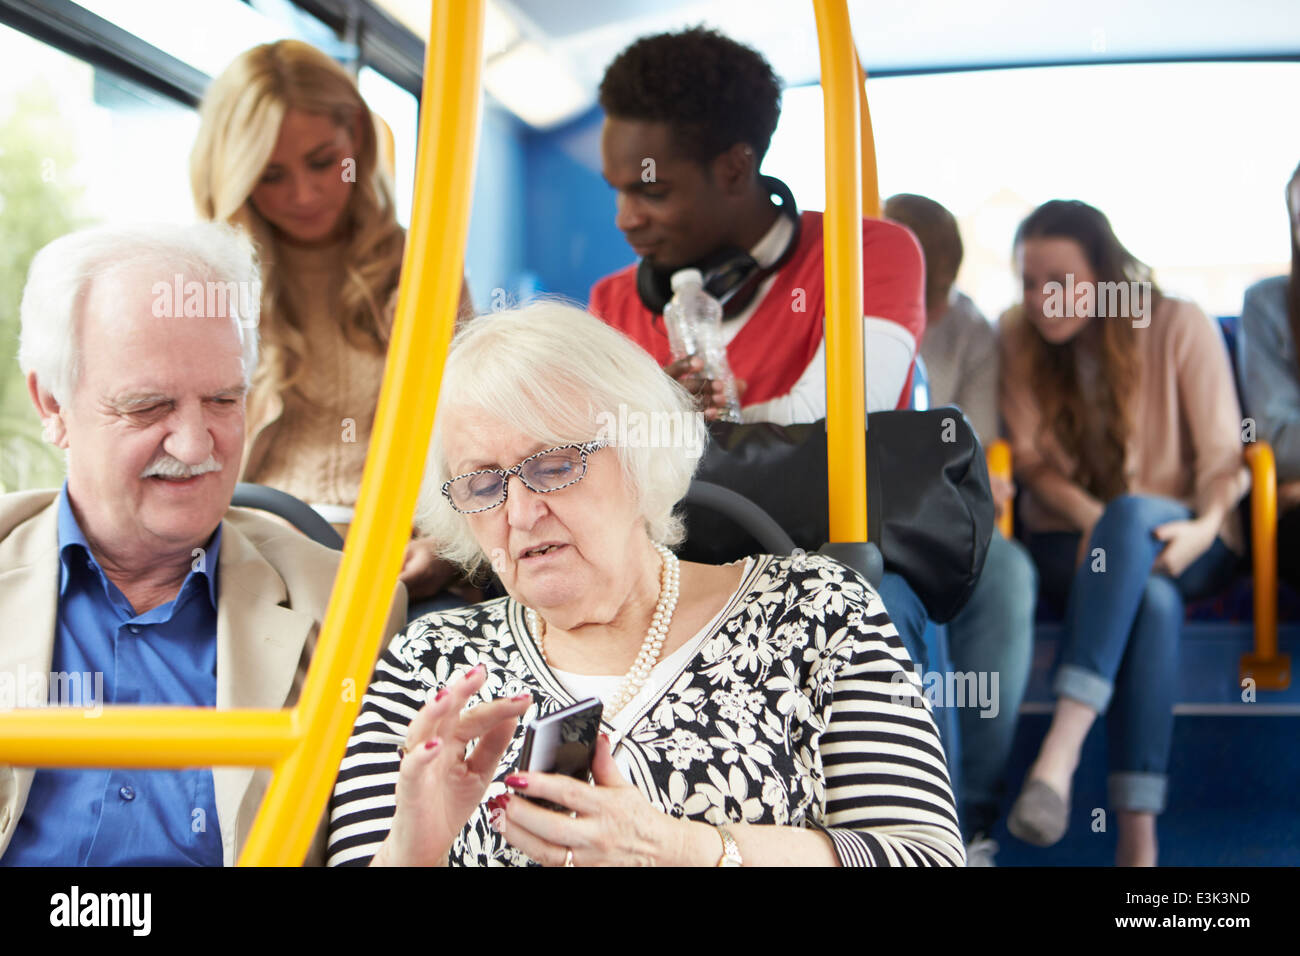 Interior Of Bus With Passengers - Stock Image